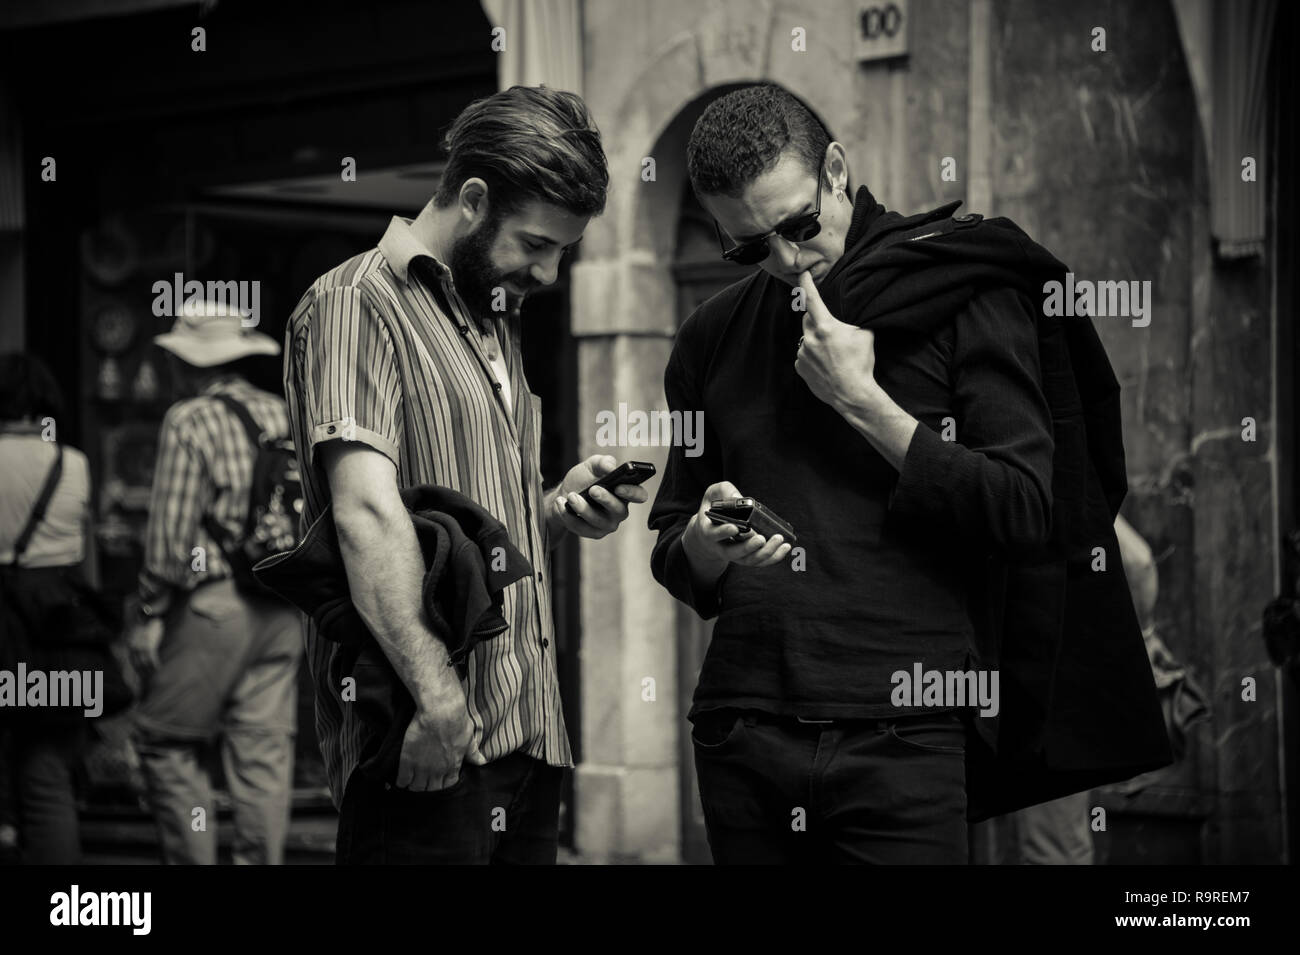 Two guys looking at mobile phones at street of Sicily, Italy - Stock Image